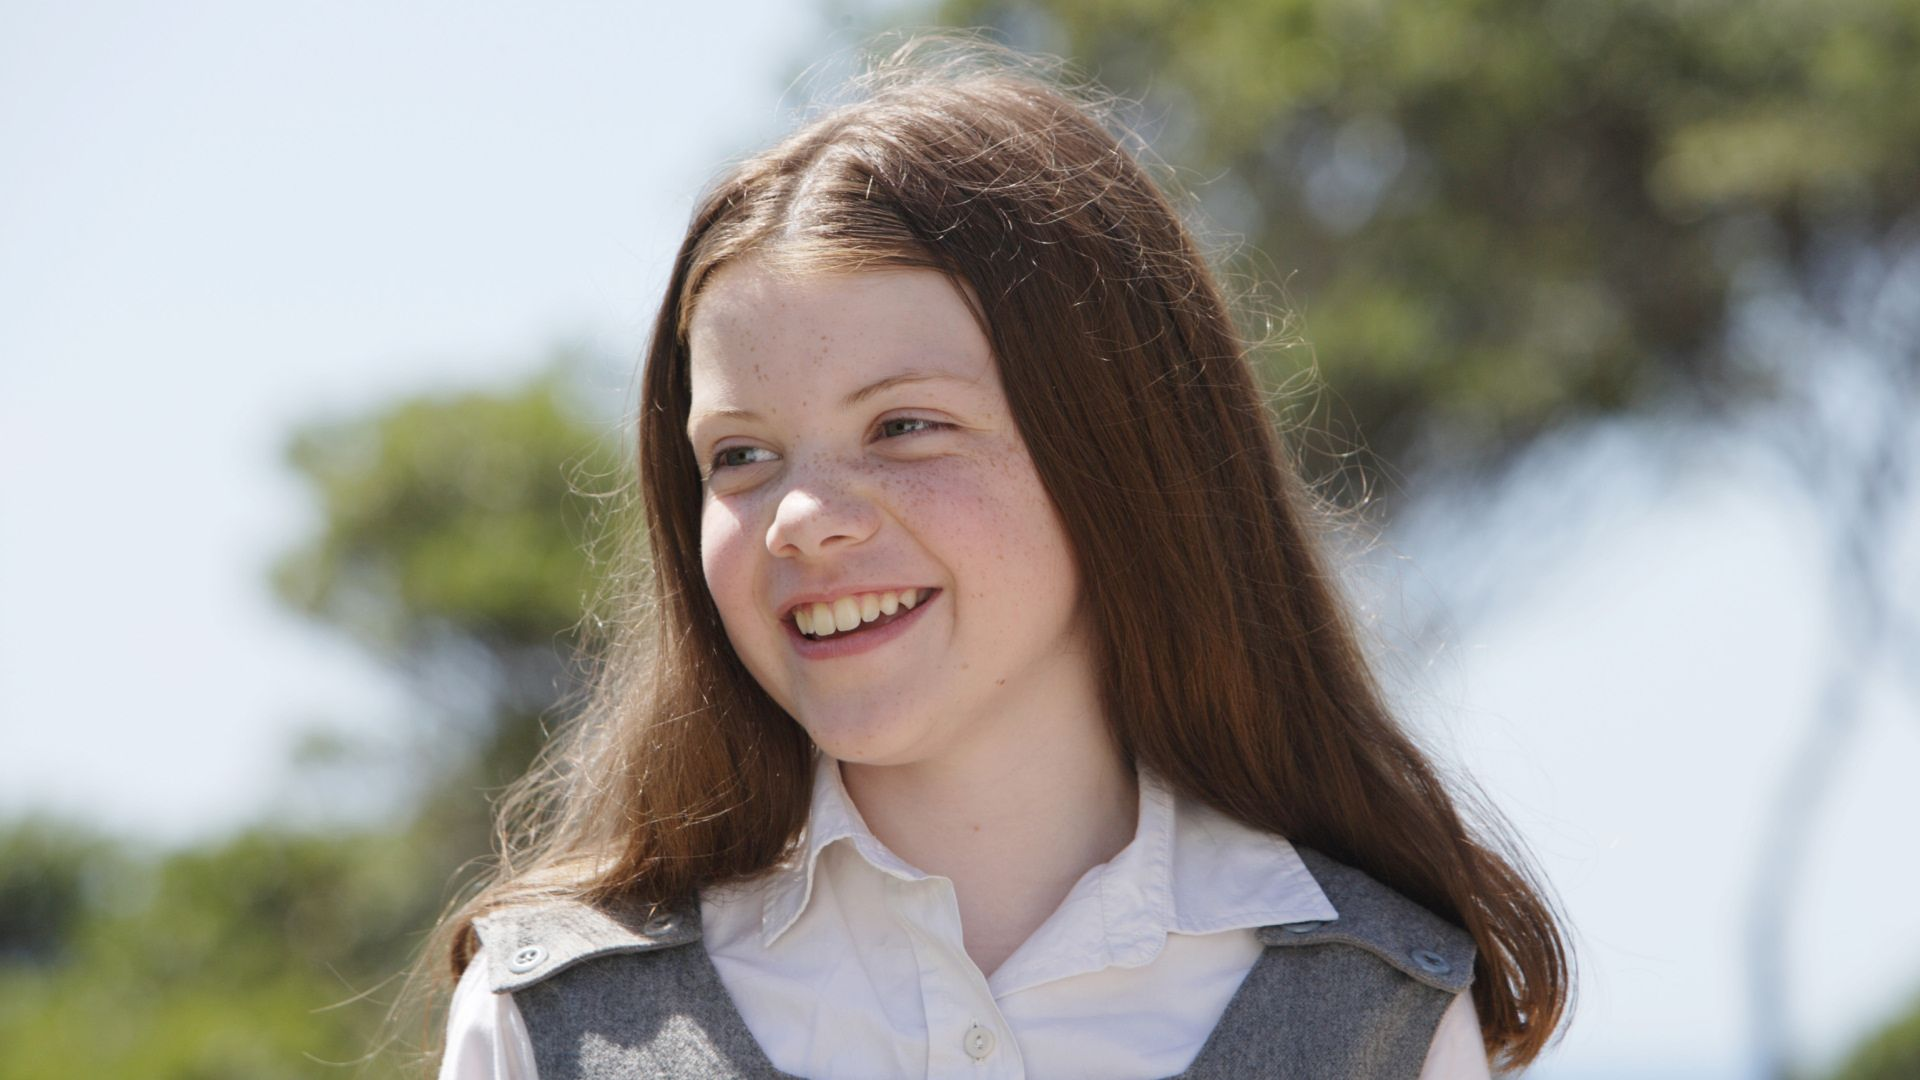 The Chronicles Of Narnia Prince Caspian Lucy Georgie Henley as Lucy...